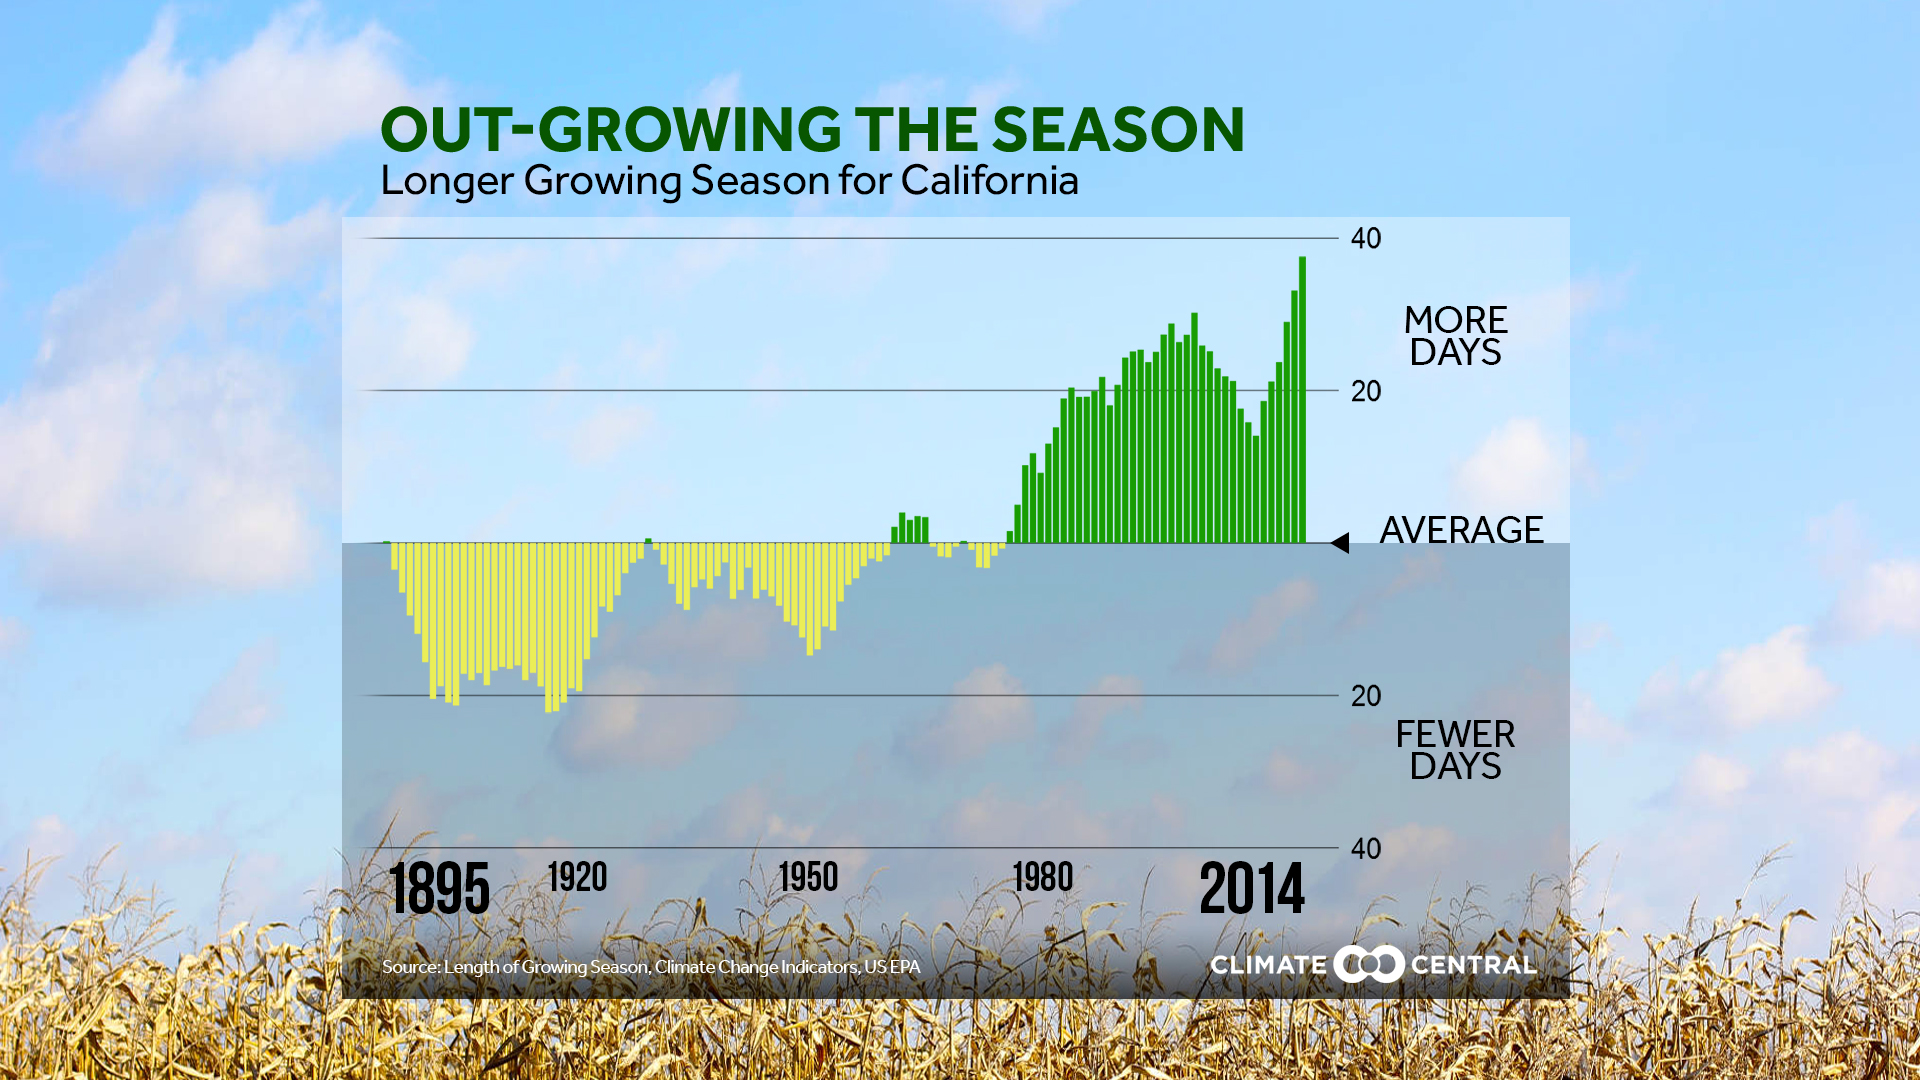 Out-Growing The Season